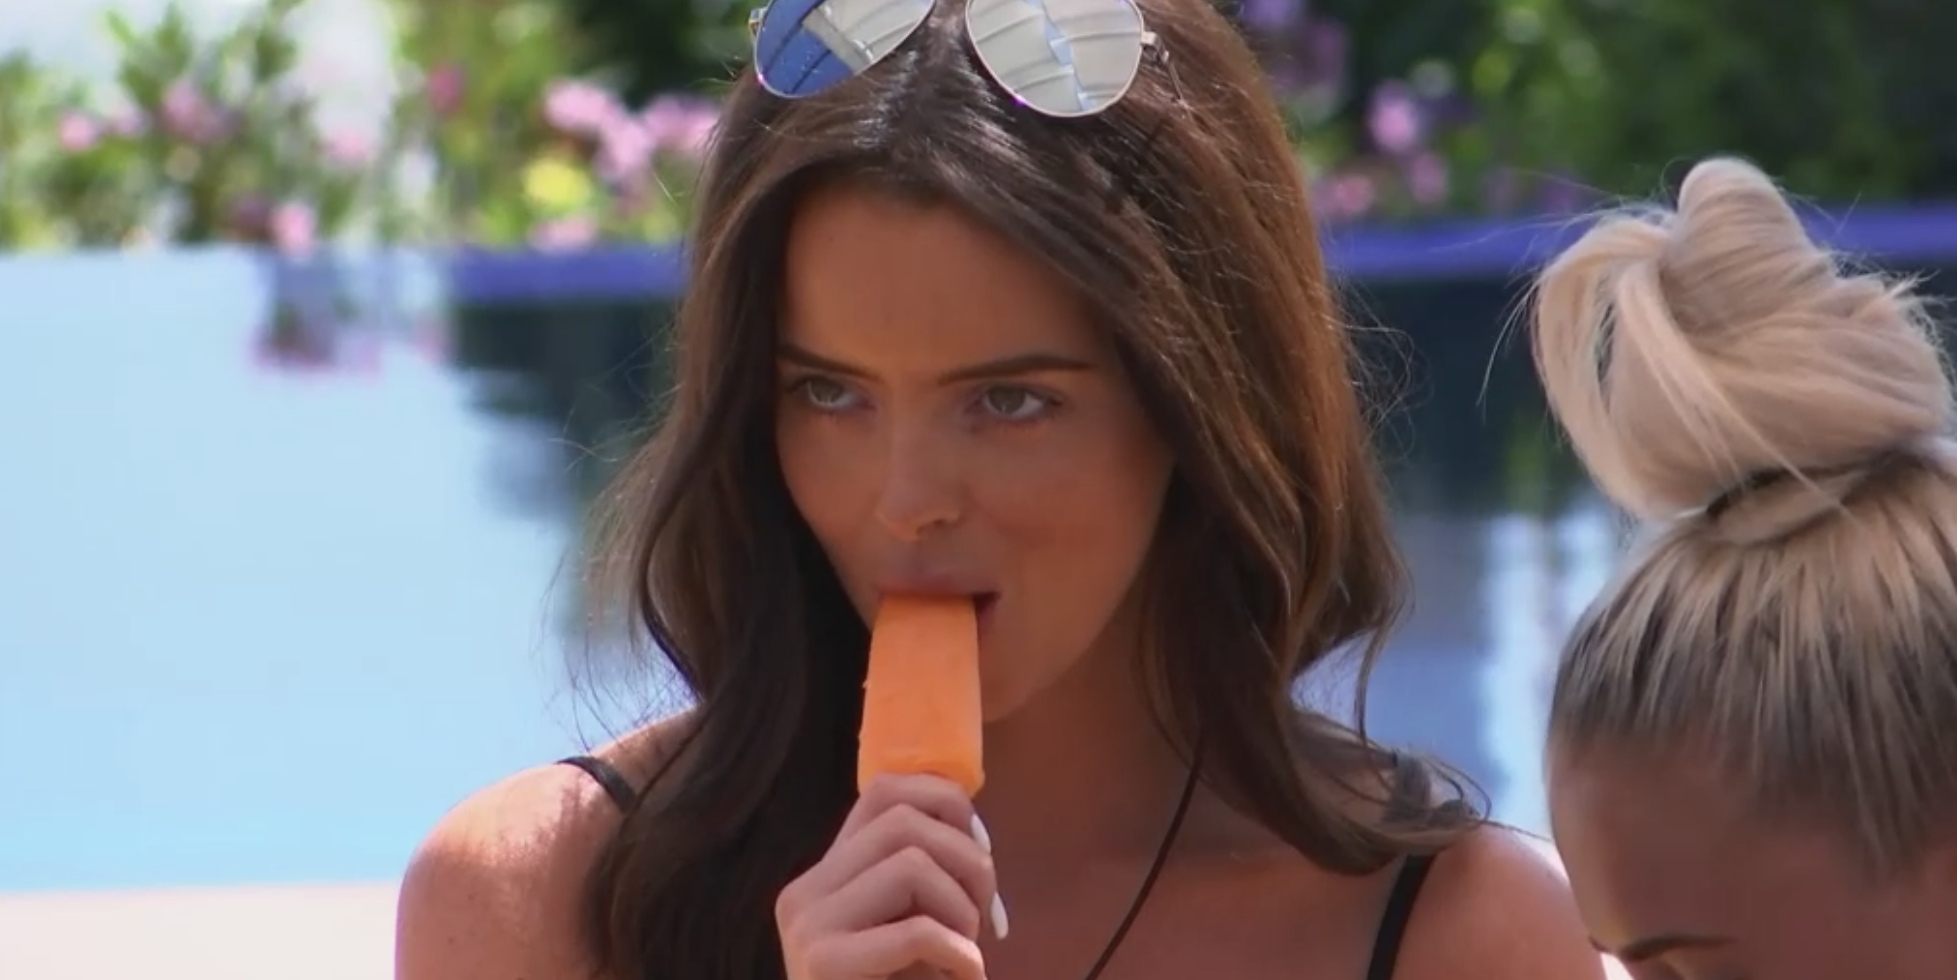 Compatibility of Love Island couples put to the test